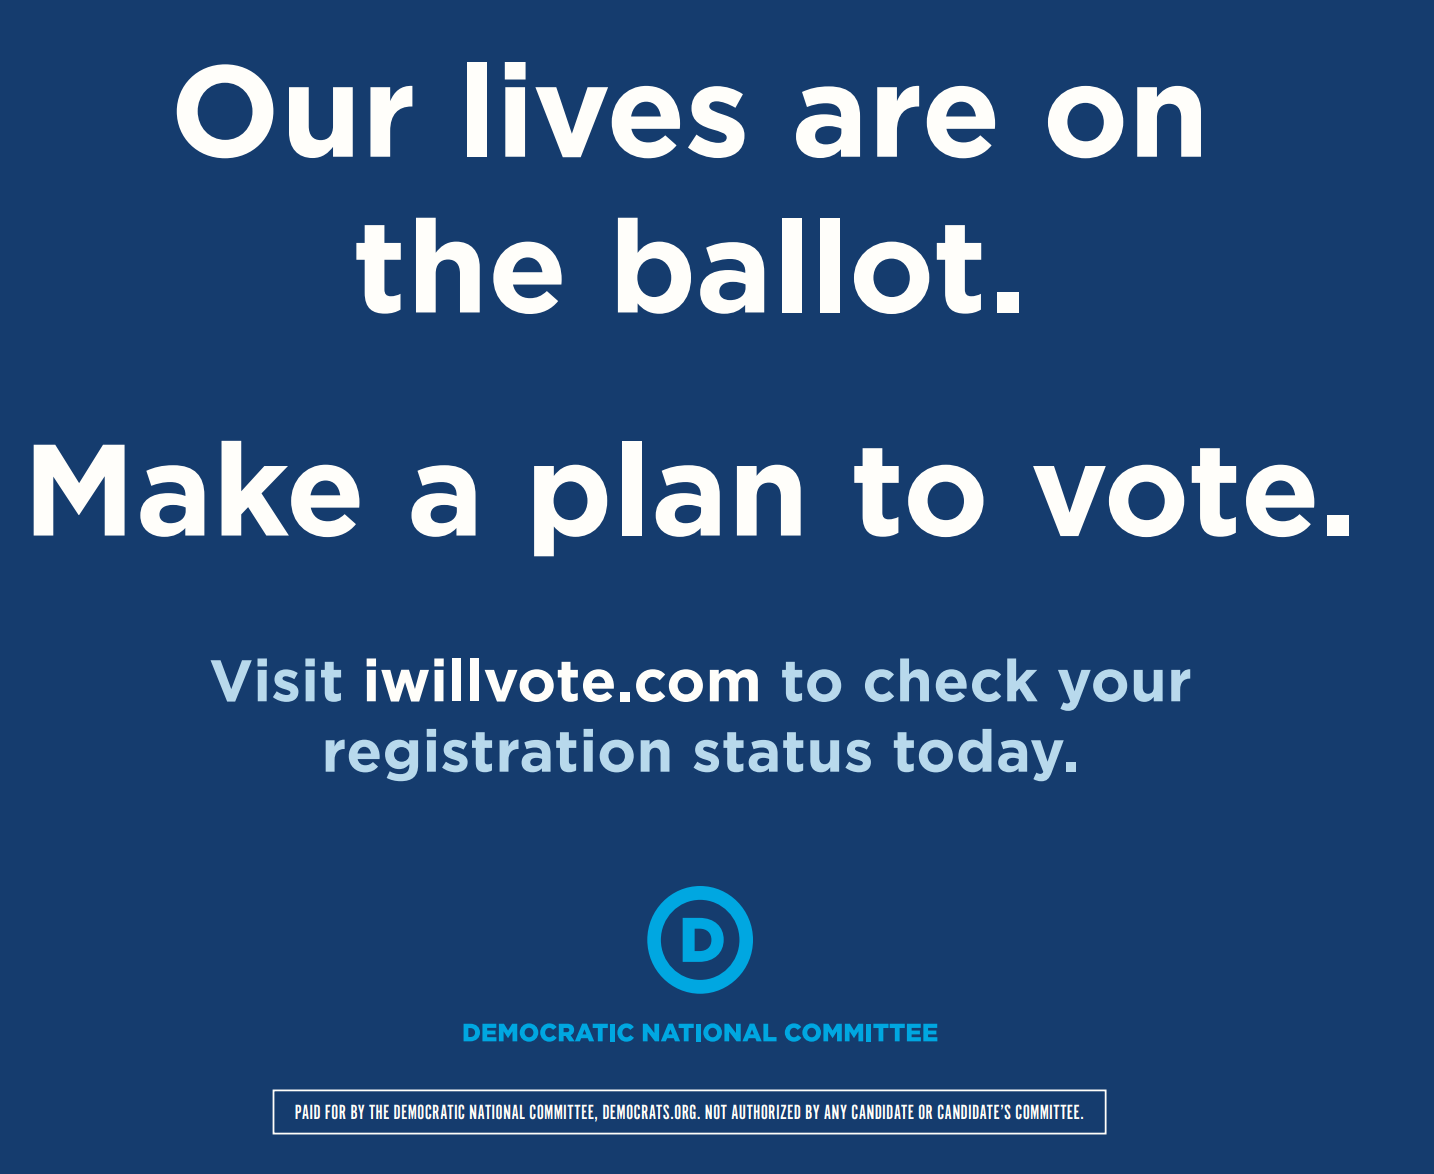 DNC launches Voter Outreach Effort in Arizona to Connect with the Asian American and Pacific Islander (AAPI) Electorate